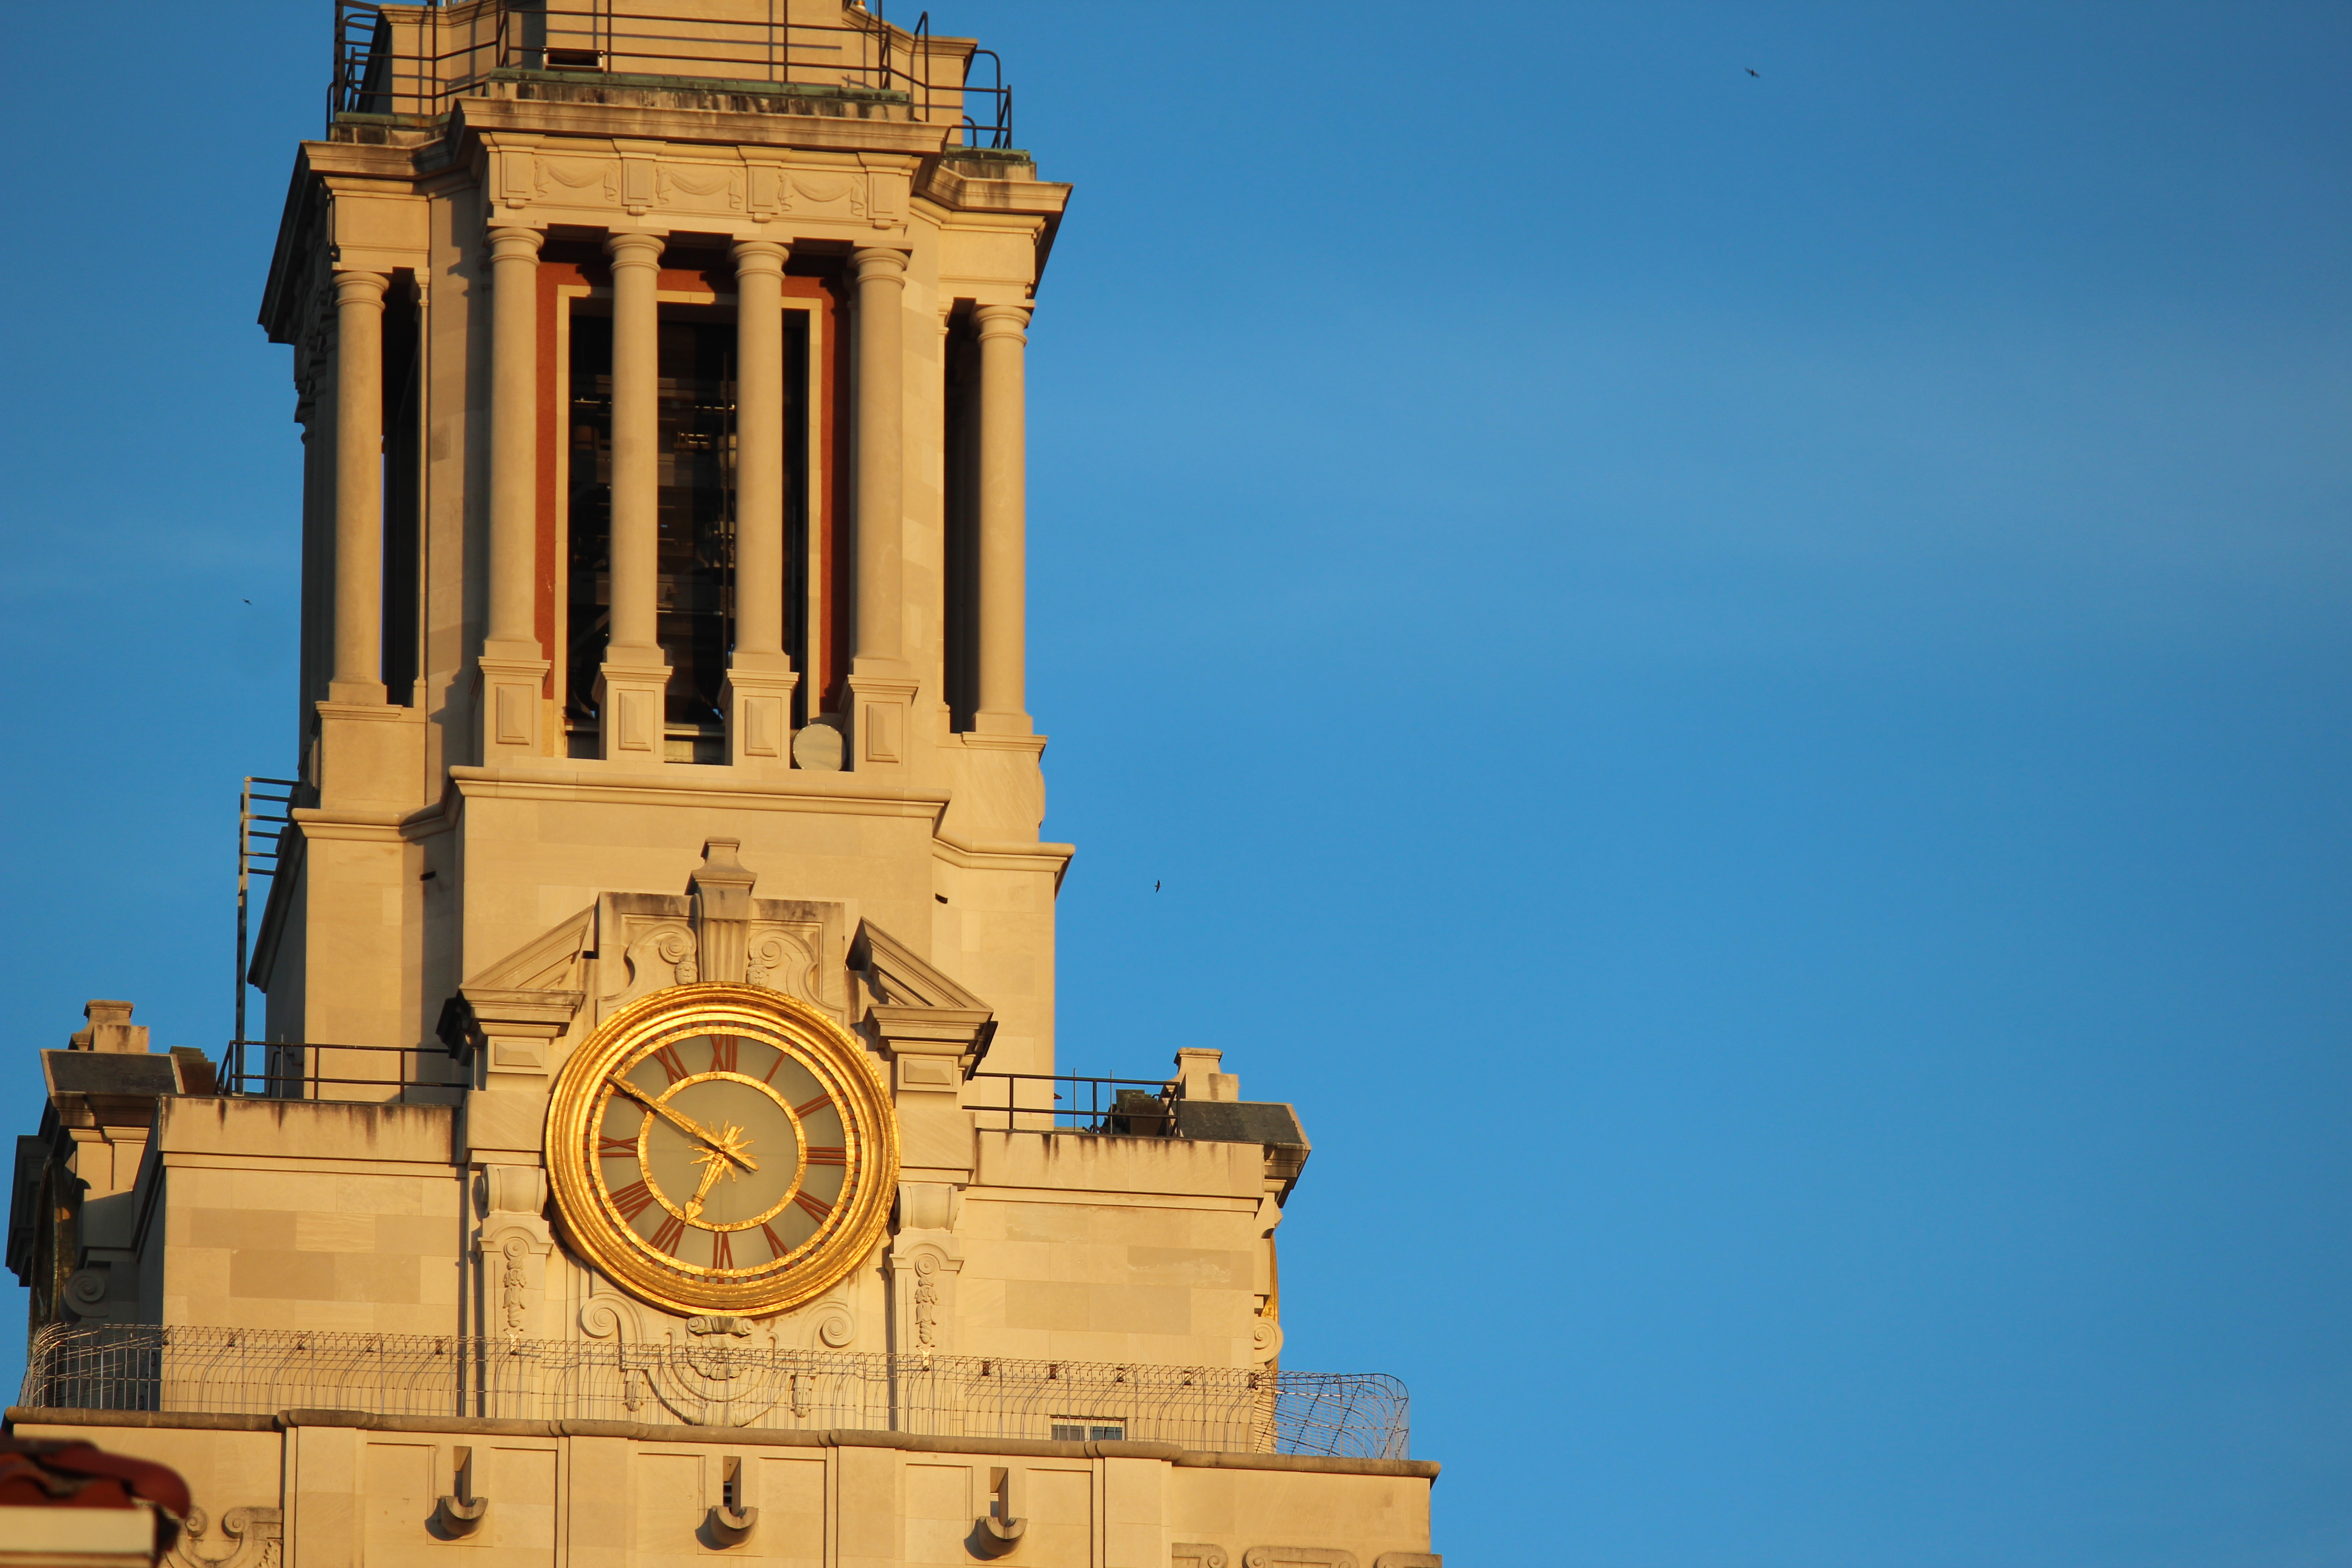 The 50 year anniversary of the UT Austin tower shooting (August 1, 1966) by Charles Whitman approaches in 2016.